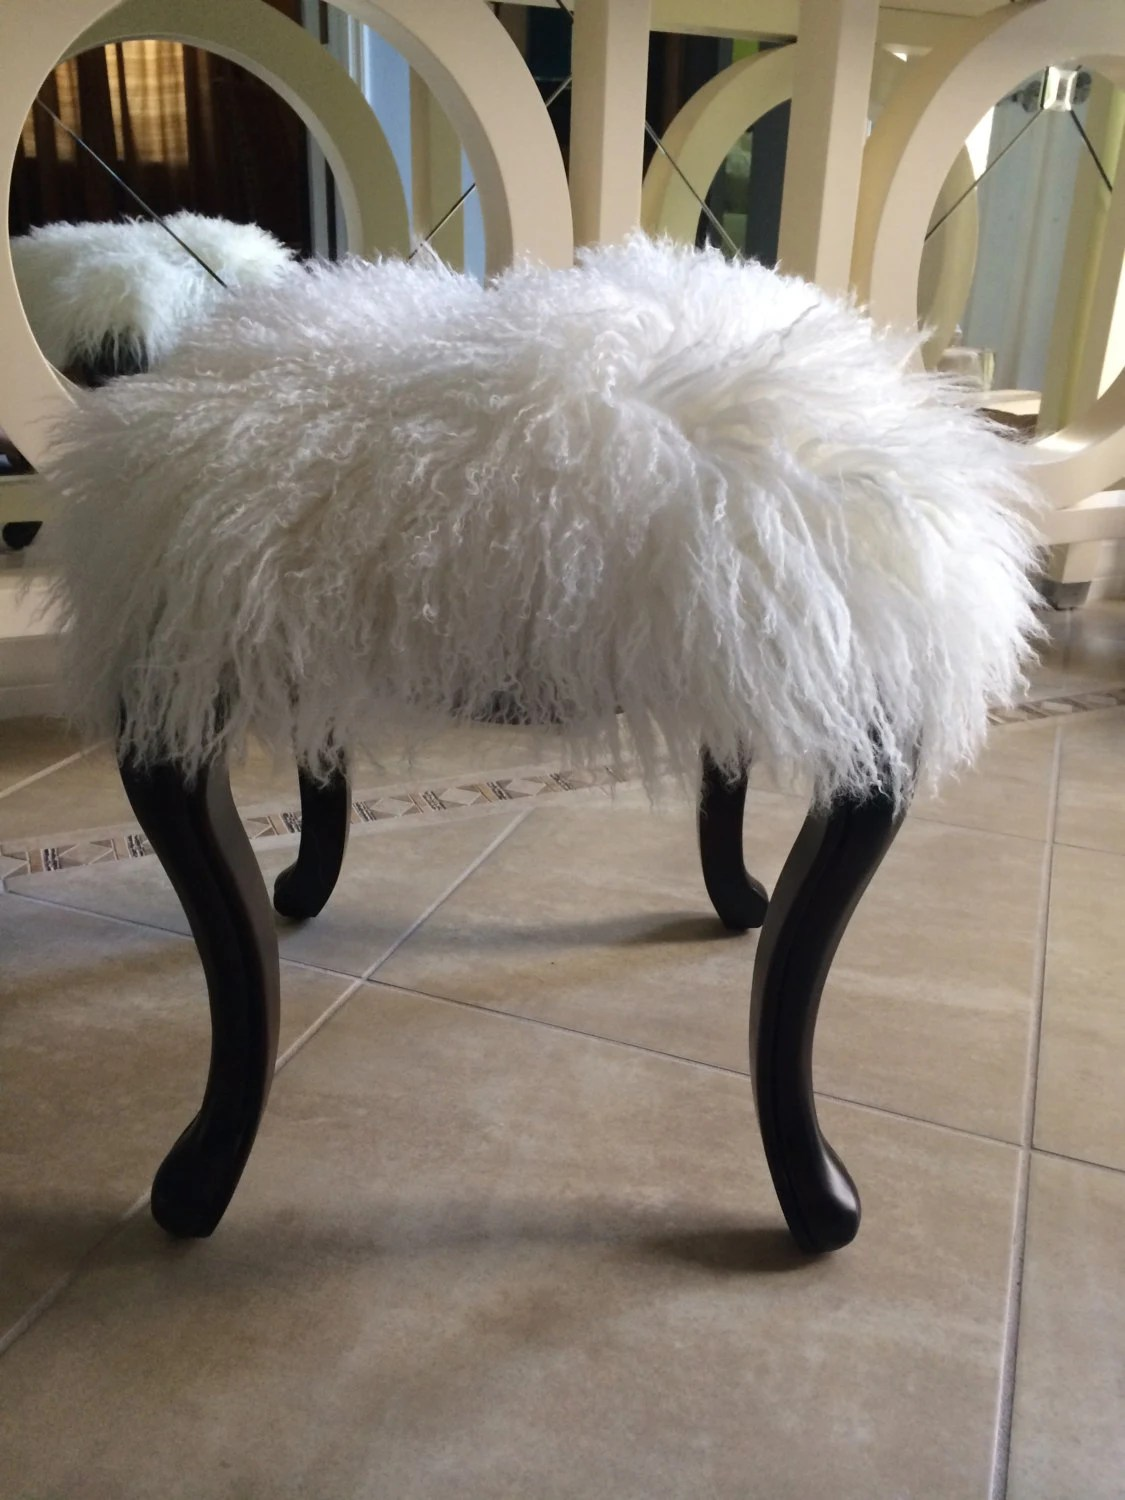 chair step stool windsor back chairs for sale items similar to real natural white mongolian lamb fur up cycled wood bench tibet ...